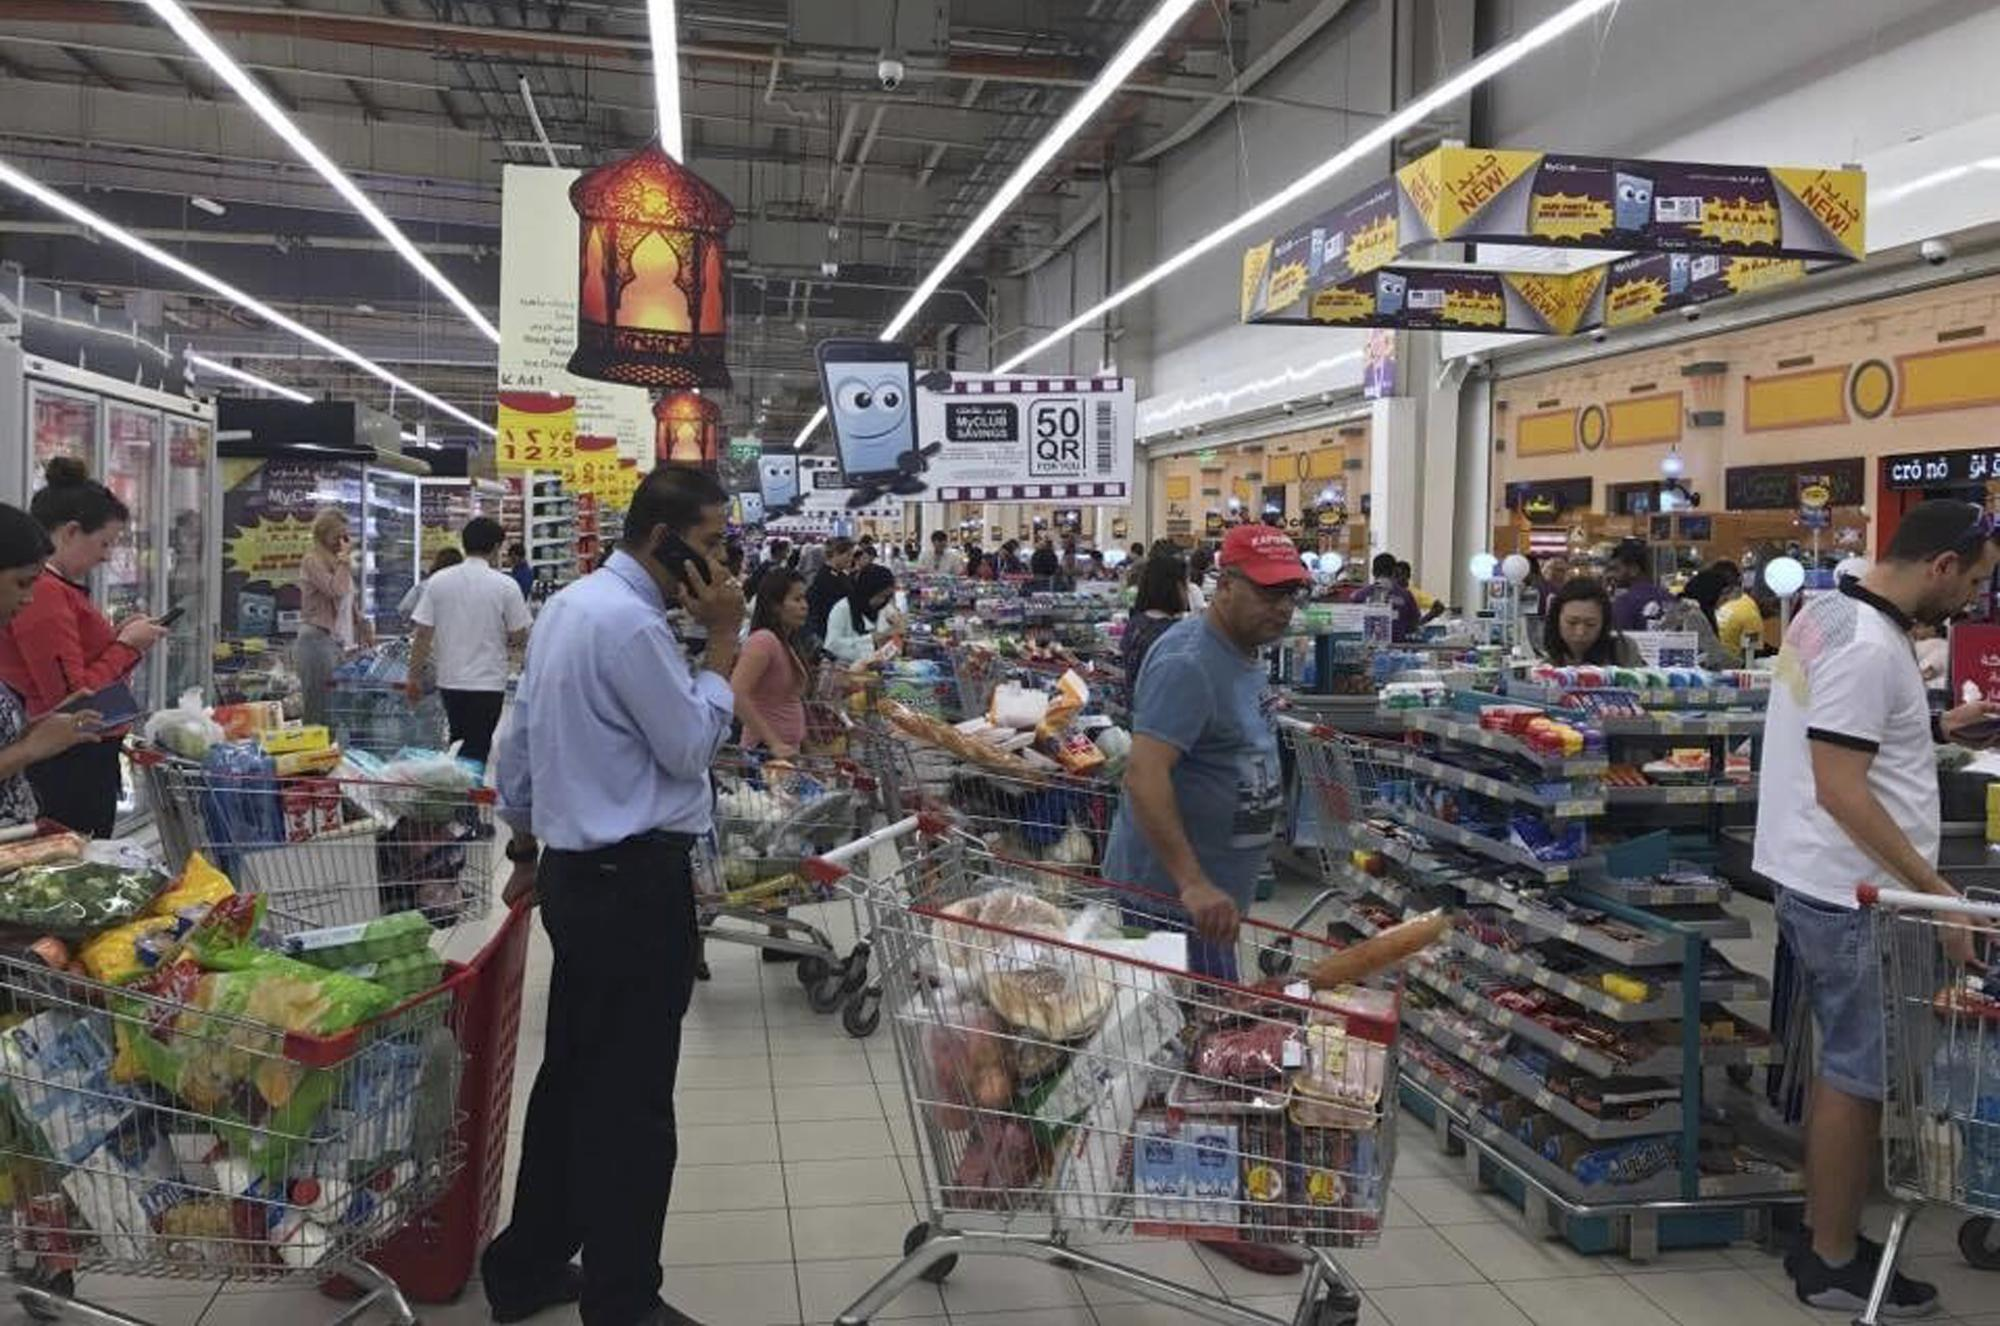 Qatar tries to ease food-supply fears as crowds throng shops